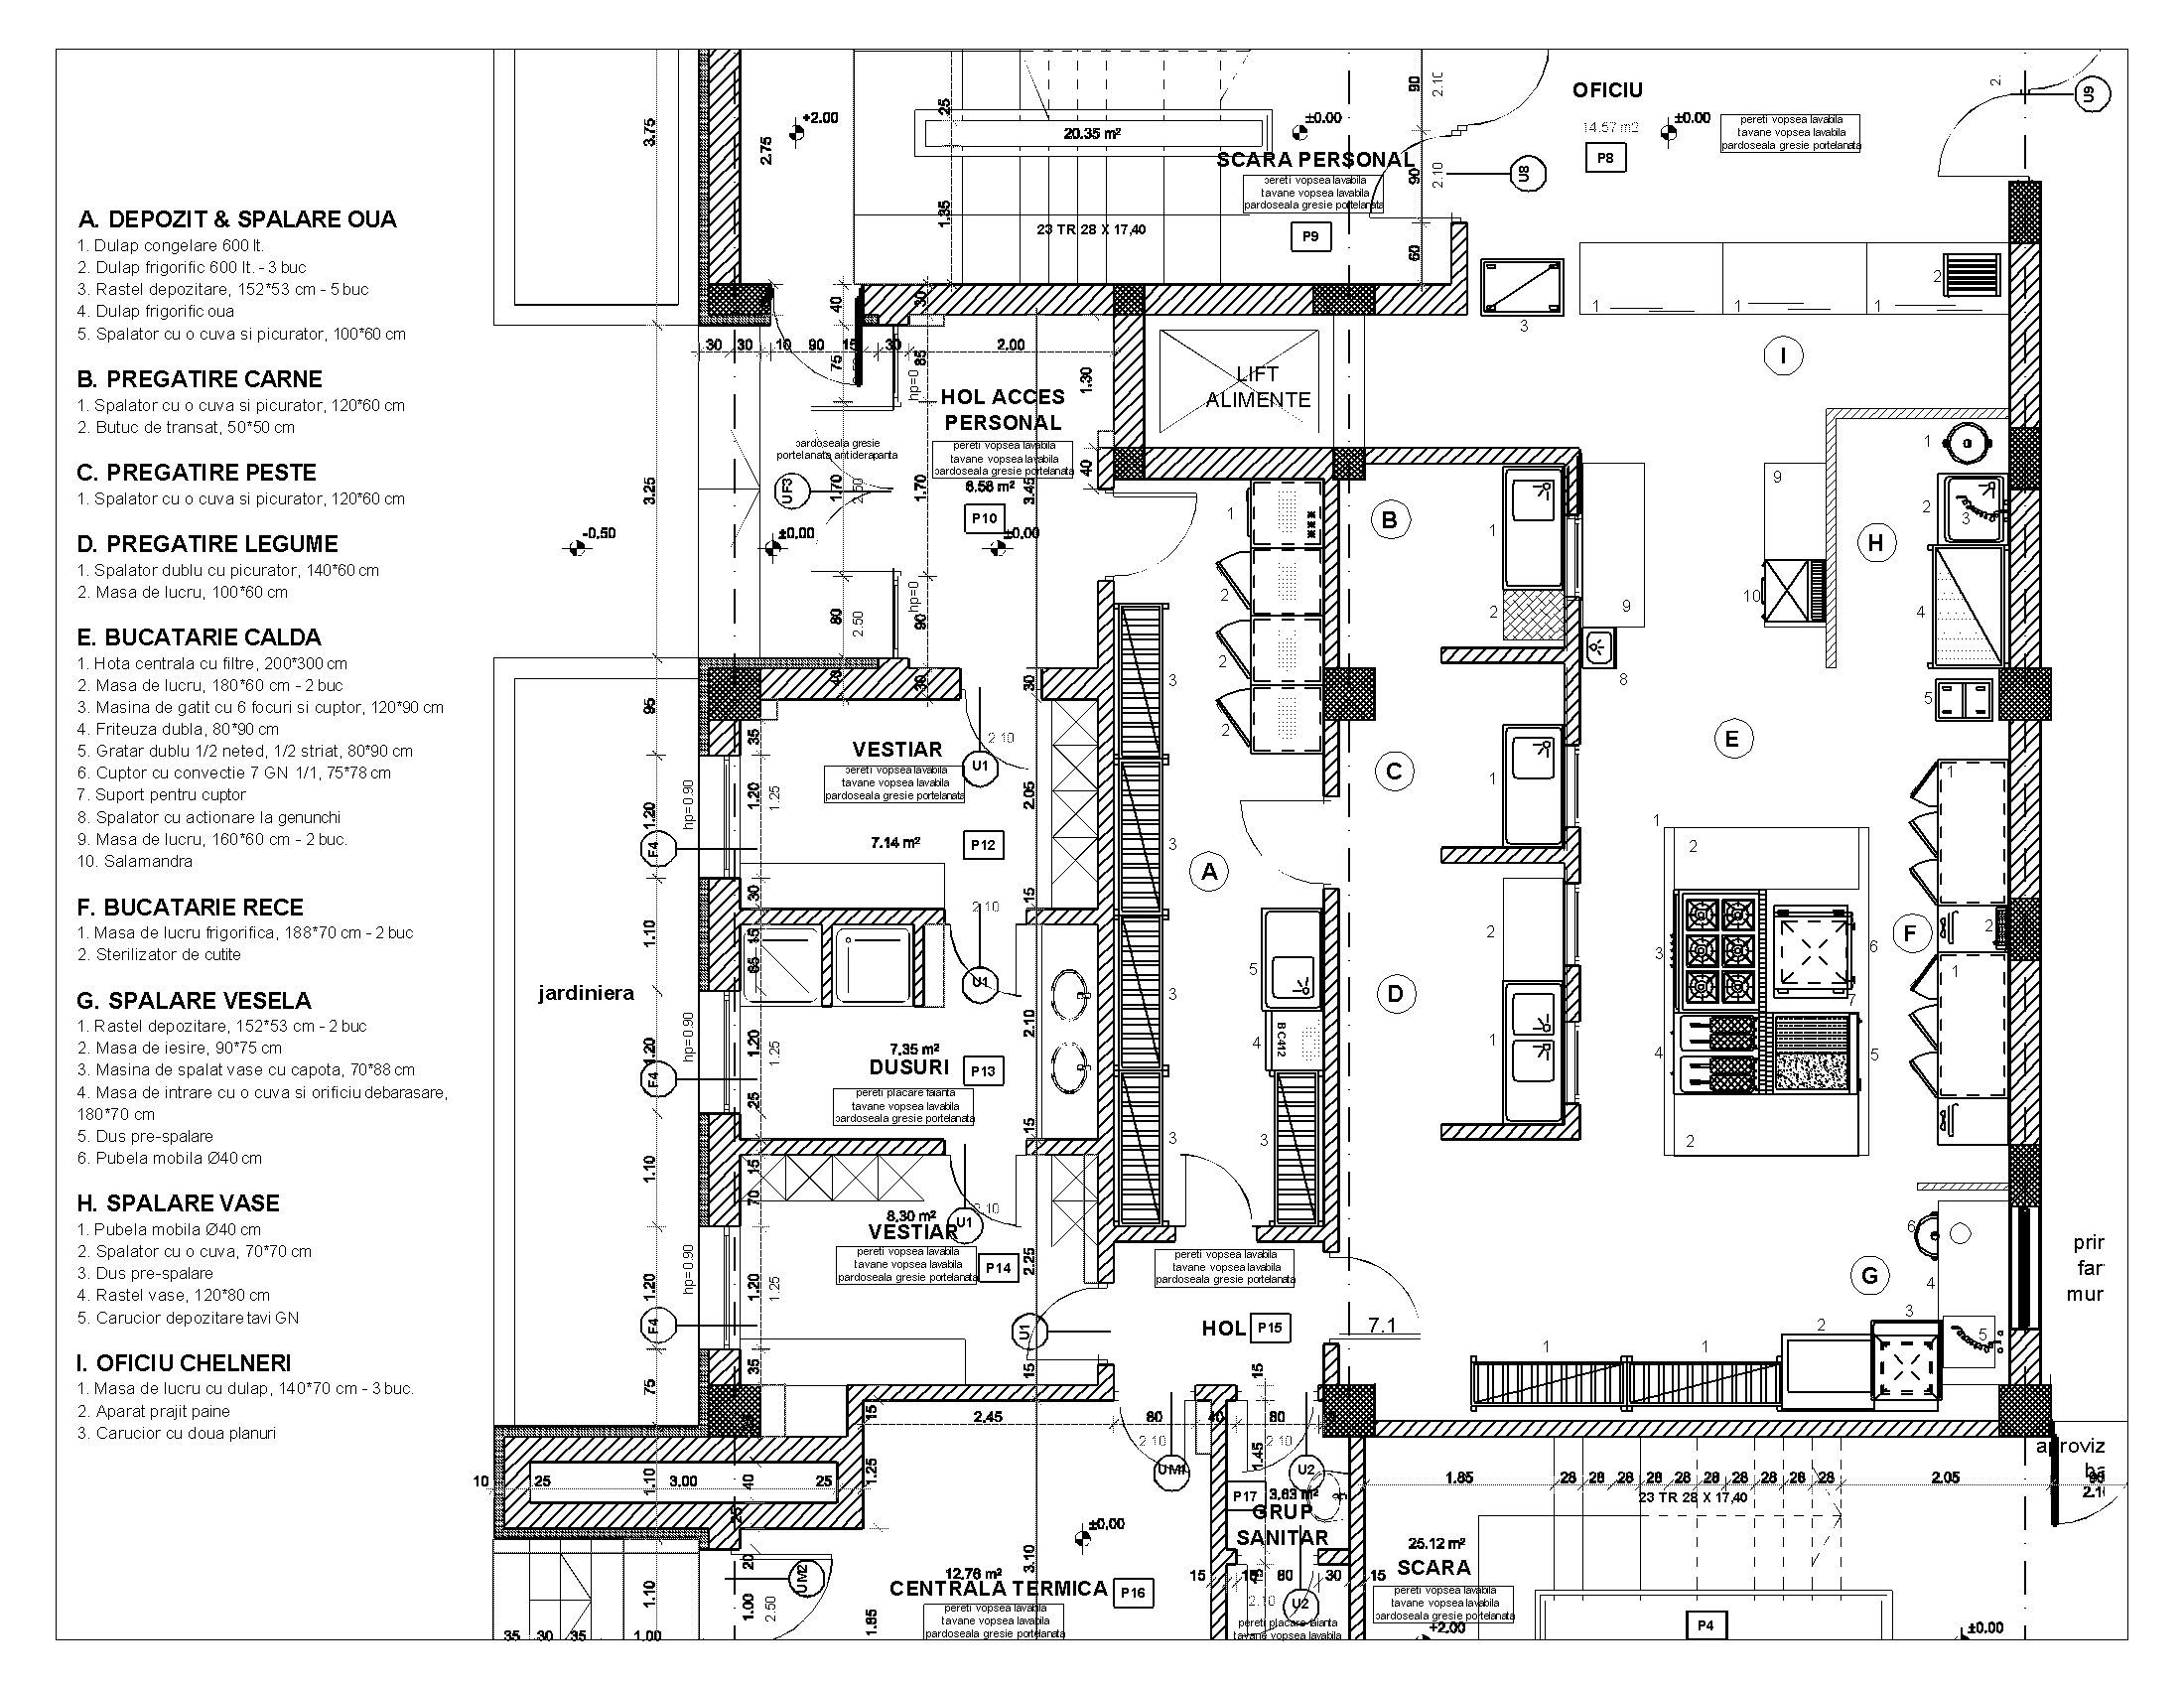 Restaurant Schematic